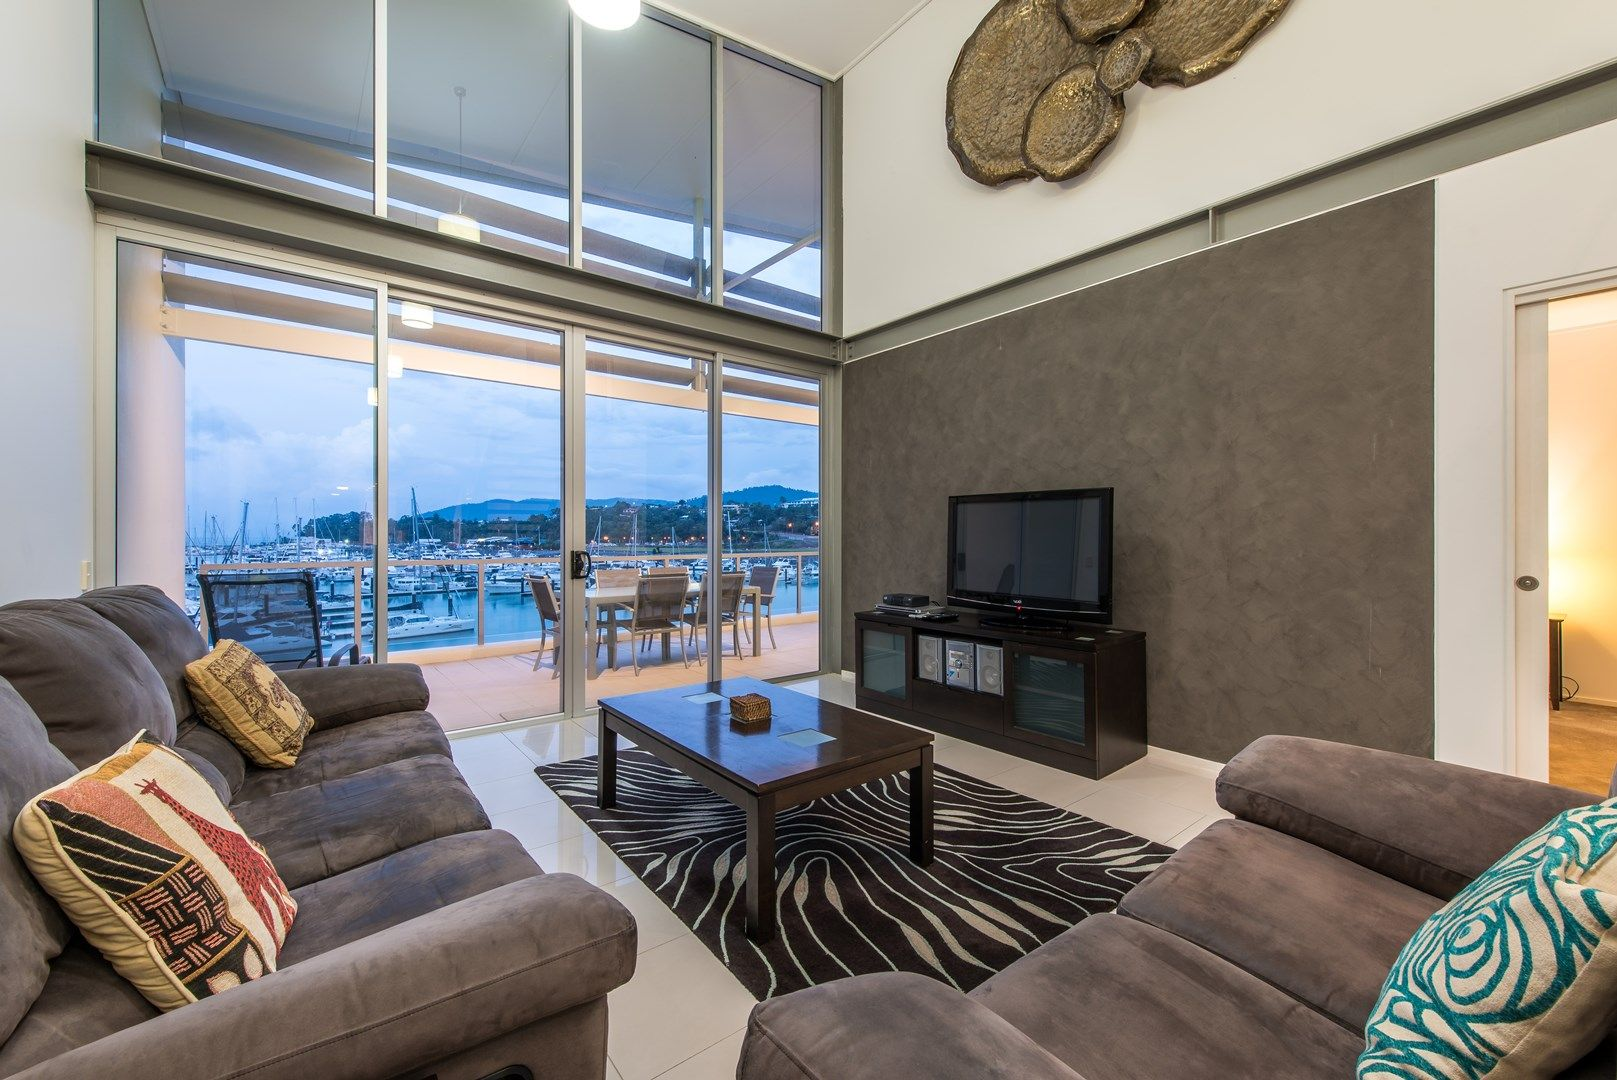 18/144 Shingley Drive, Airlie Beach QLD 4802, Image 1